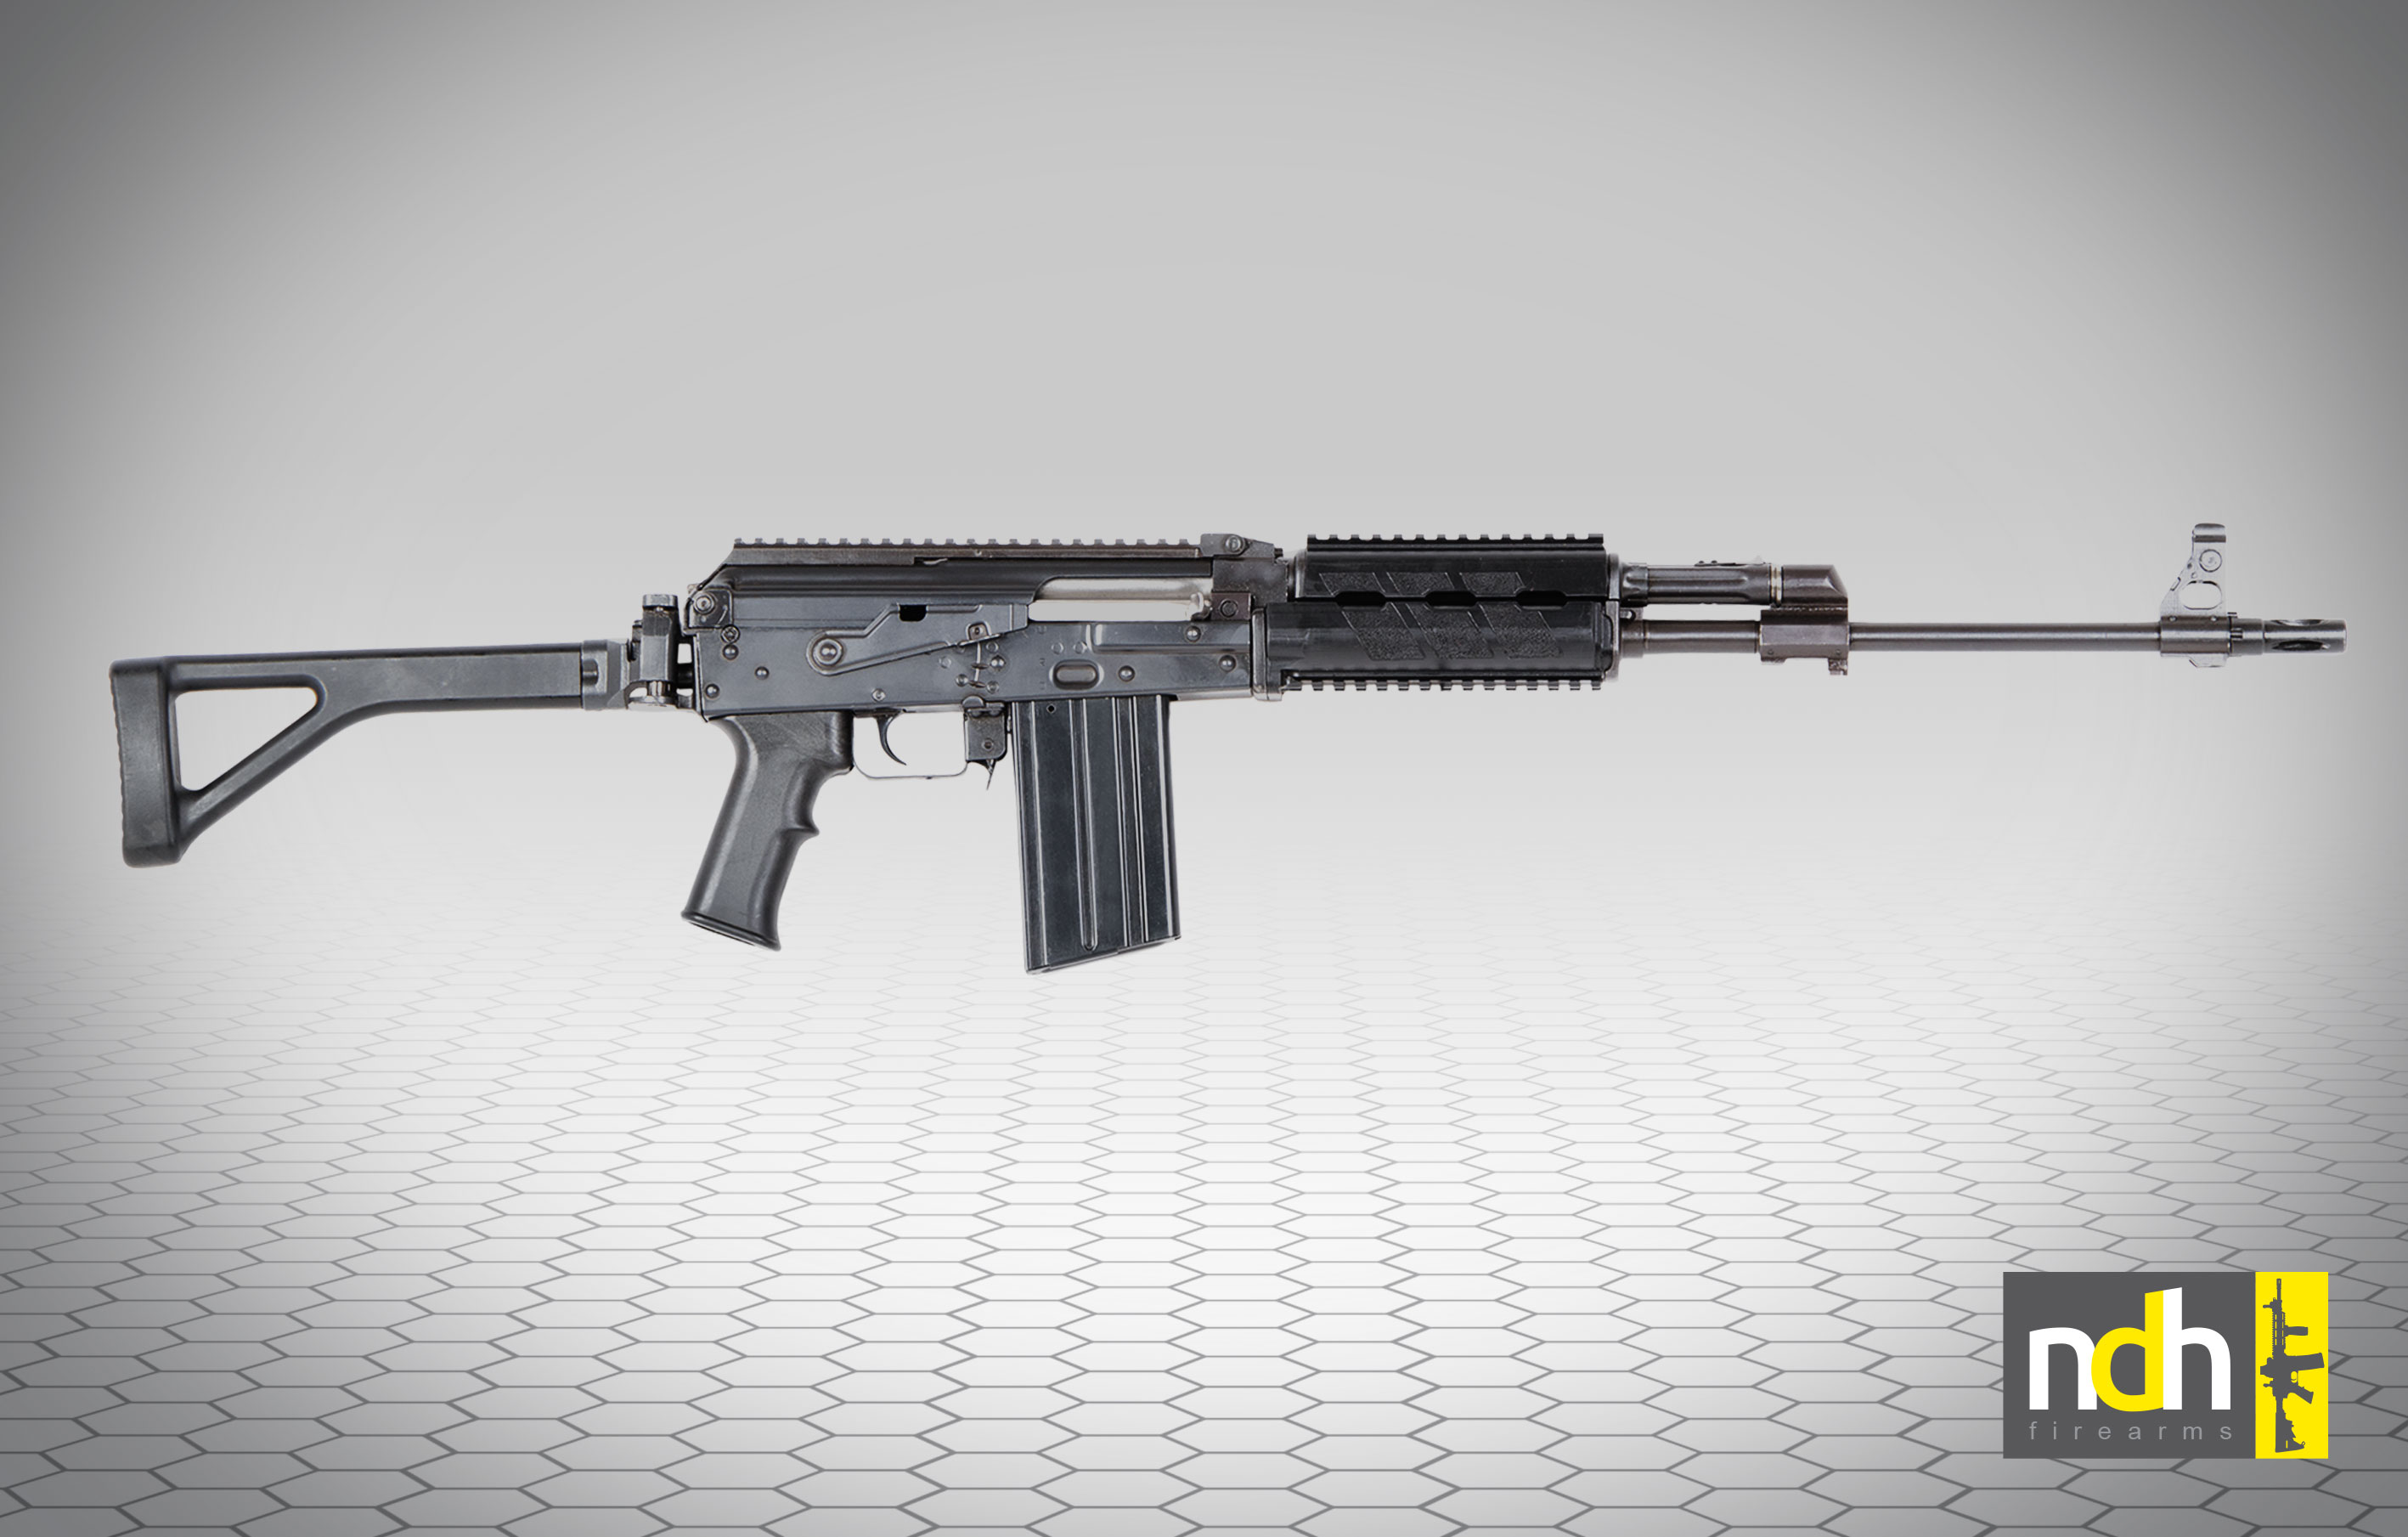 zastava-m05-n-select-fire-7-62-x-51mm-nato-assault-rifle